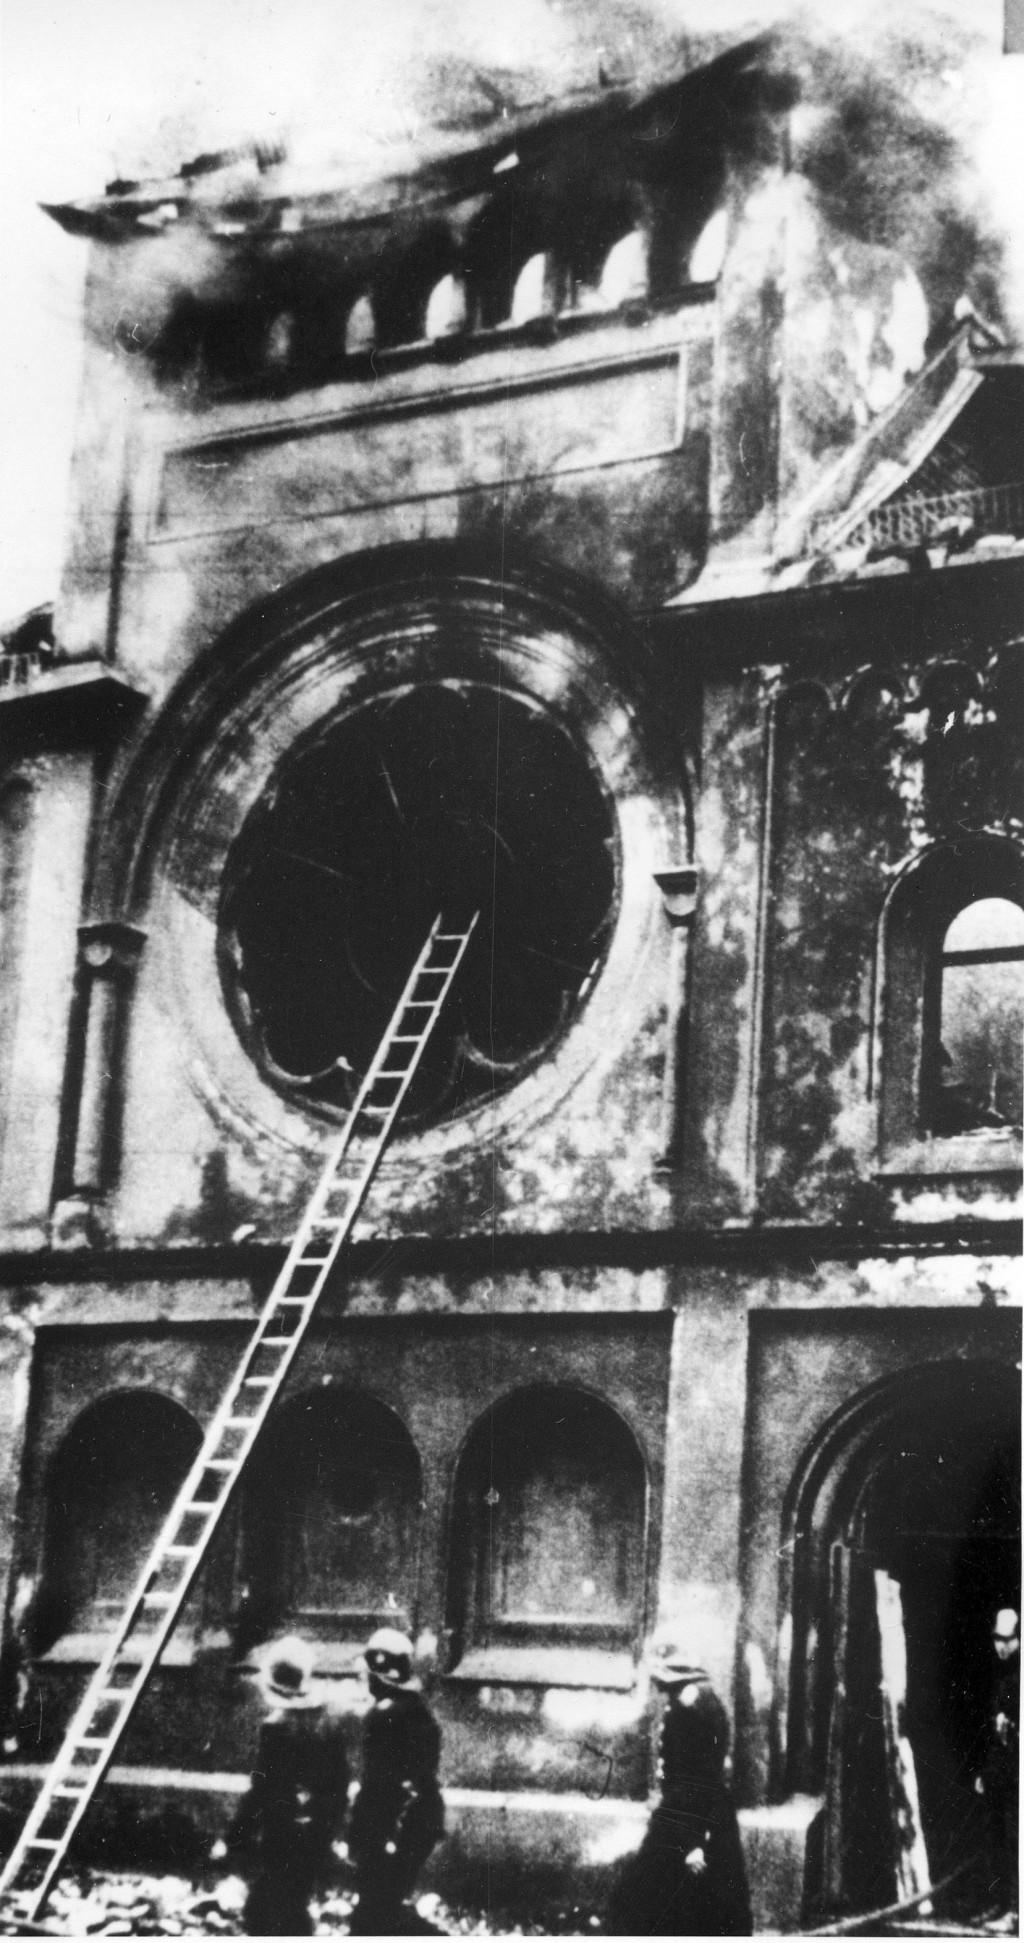 FILE - In this Nov. 10, 1938 file photo firefighters are at the Fasanenstrasse synagogue, Berlin's biggest house of Jewish worship, after Nazis set fi